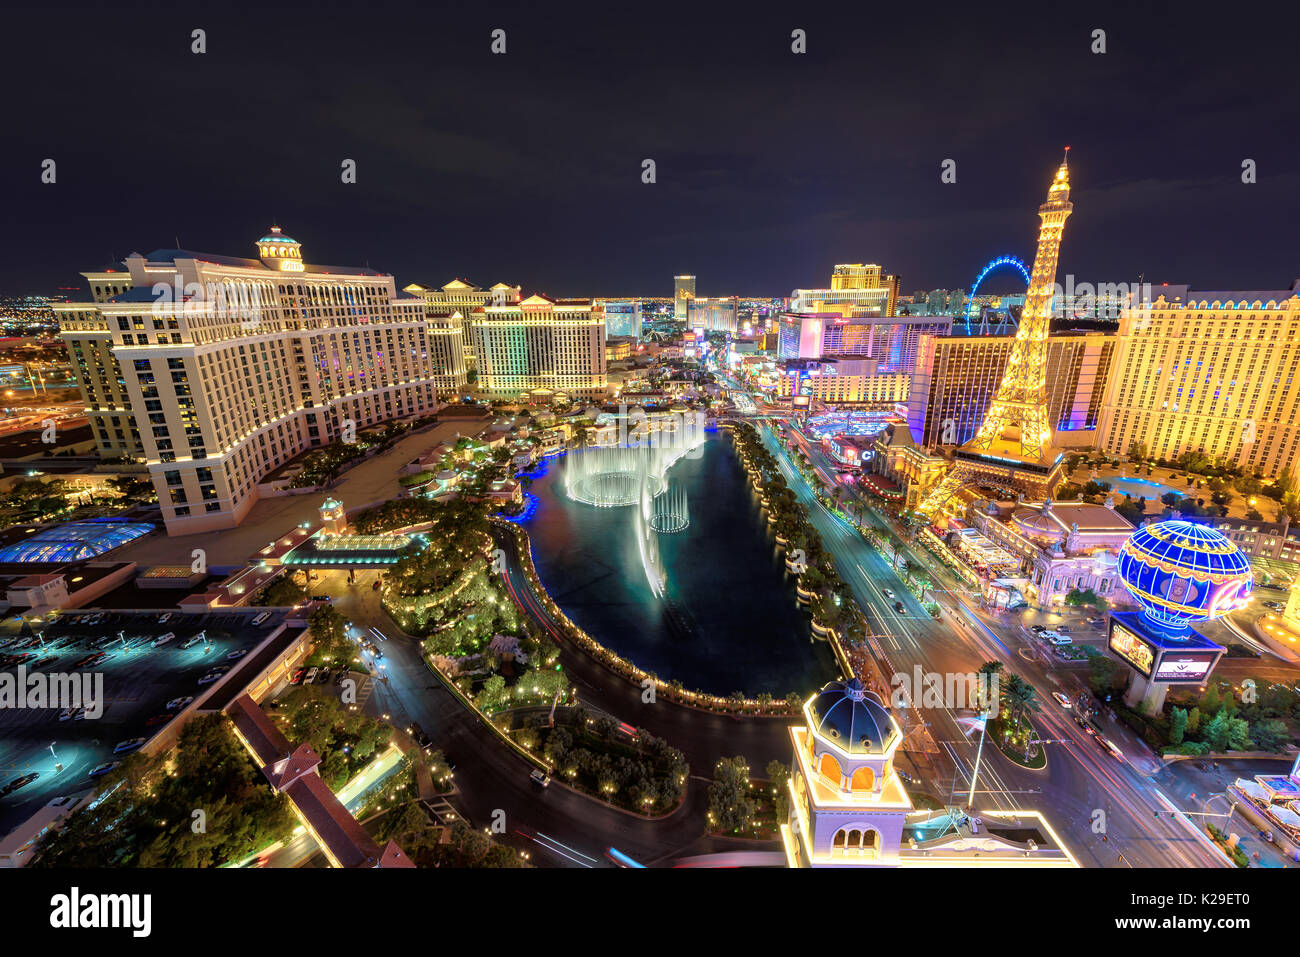 Las Vegas Strip Photo Stock